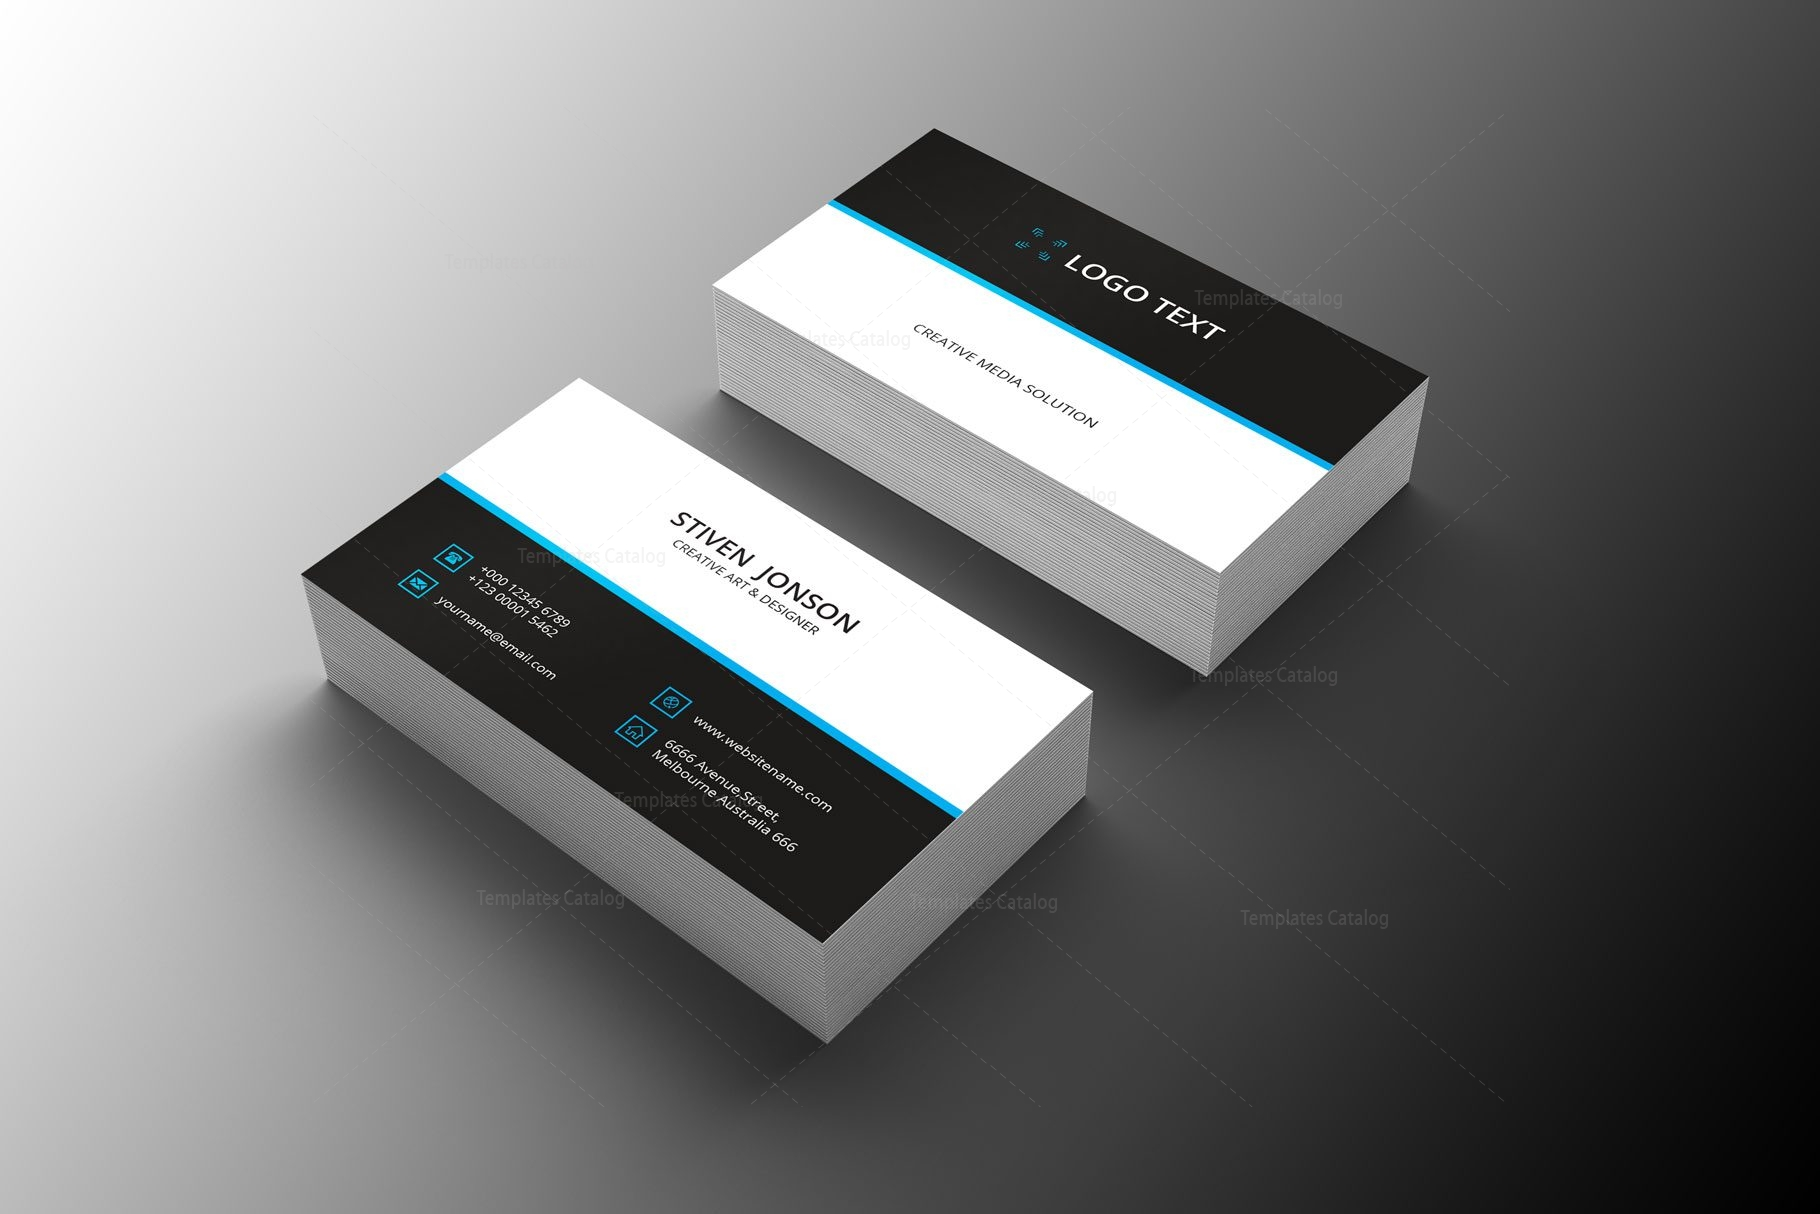 distributor professional business card design  graphic